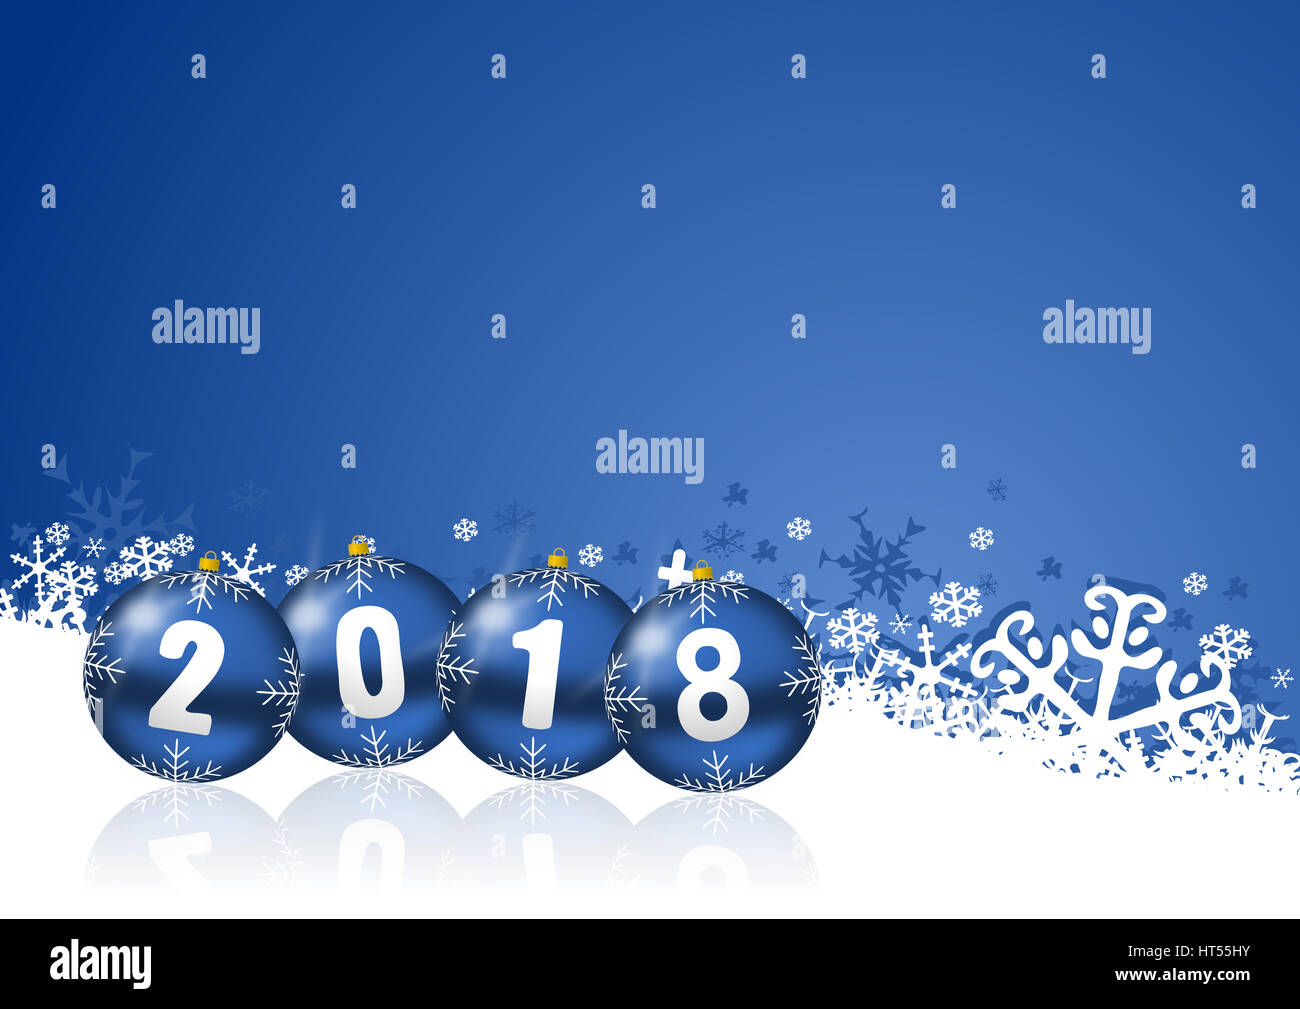 2018 happy new years illustration with christmas balls and snowflakes on blue background